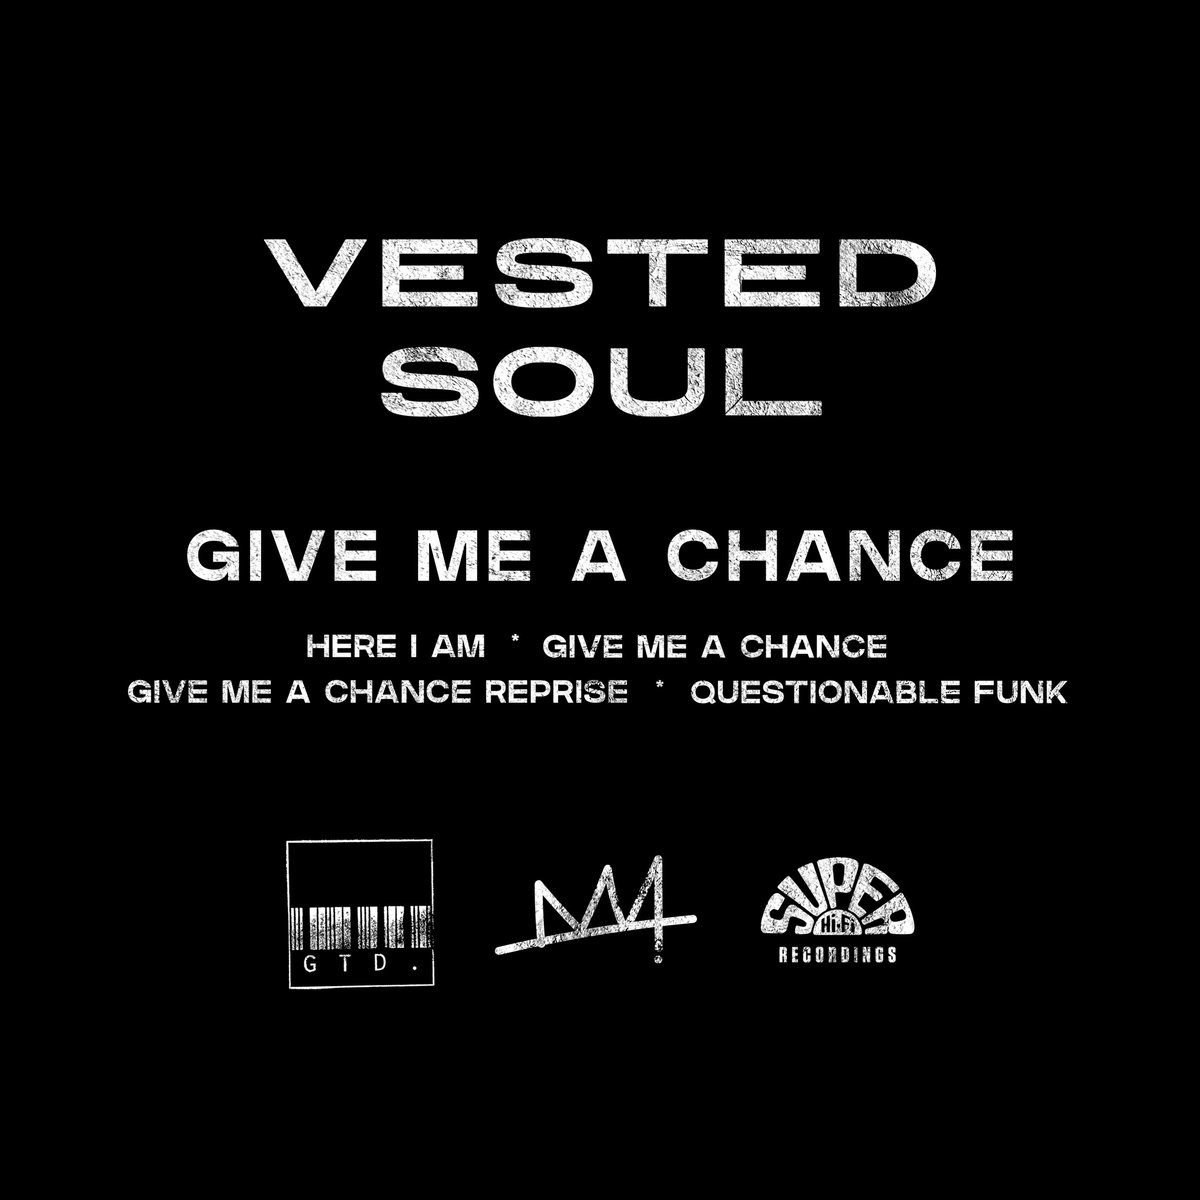 Vested Soul Give Me a Chance